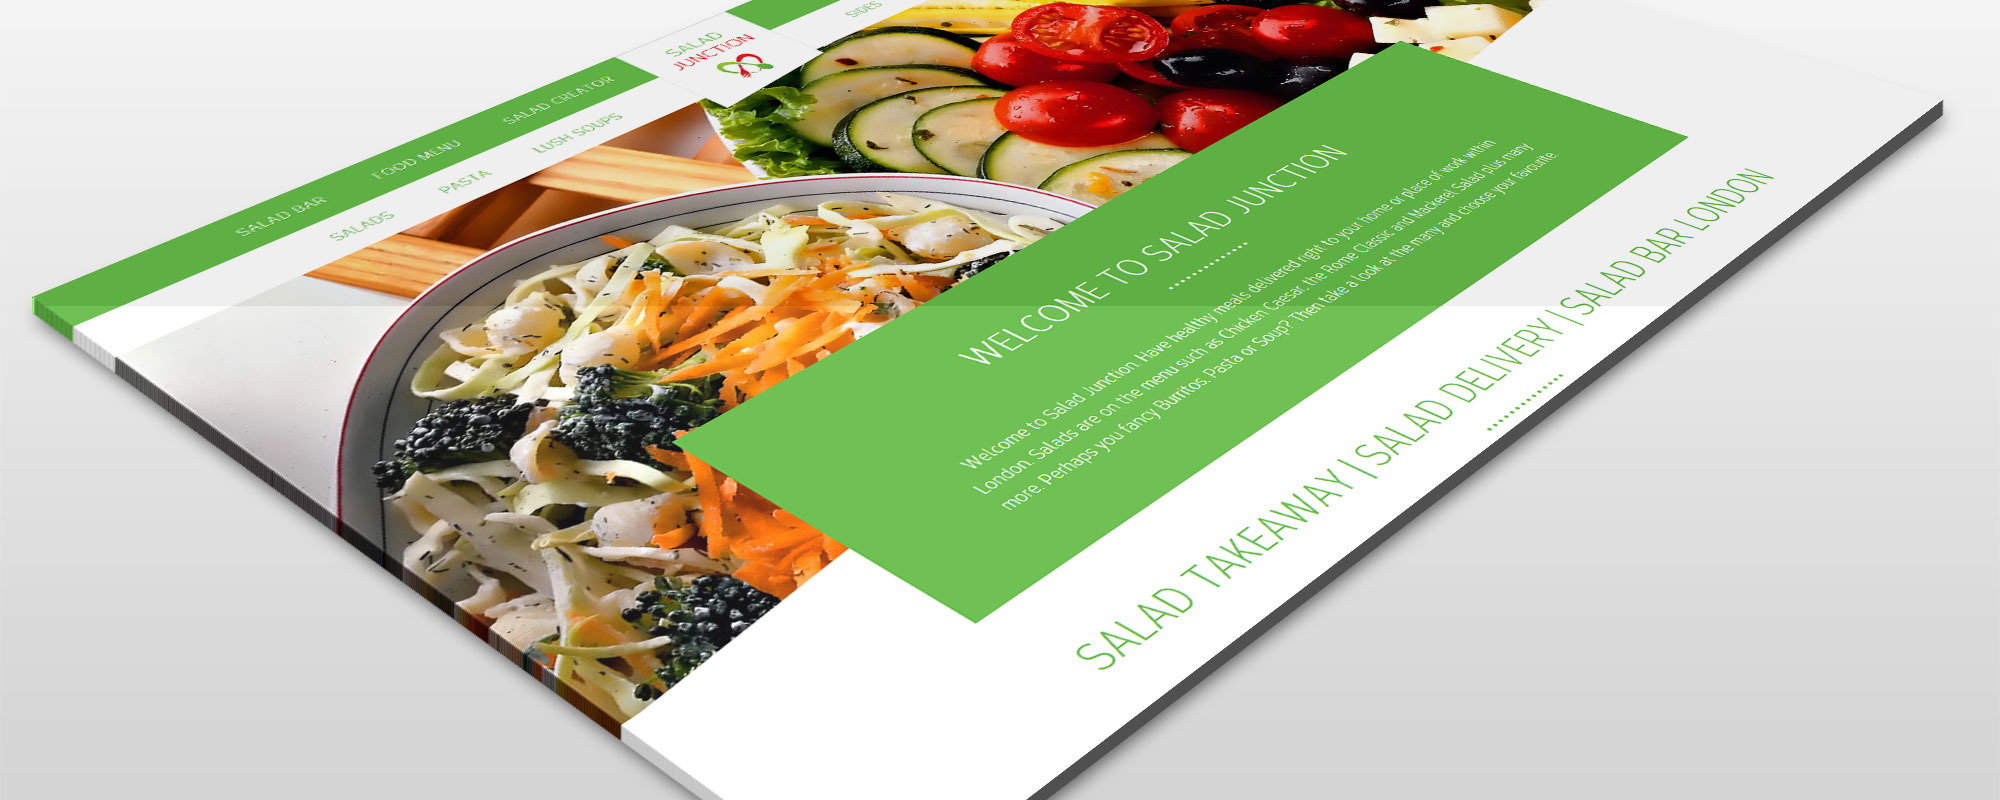 salad-junction-website-design